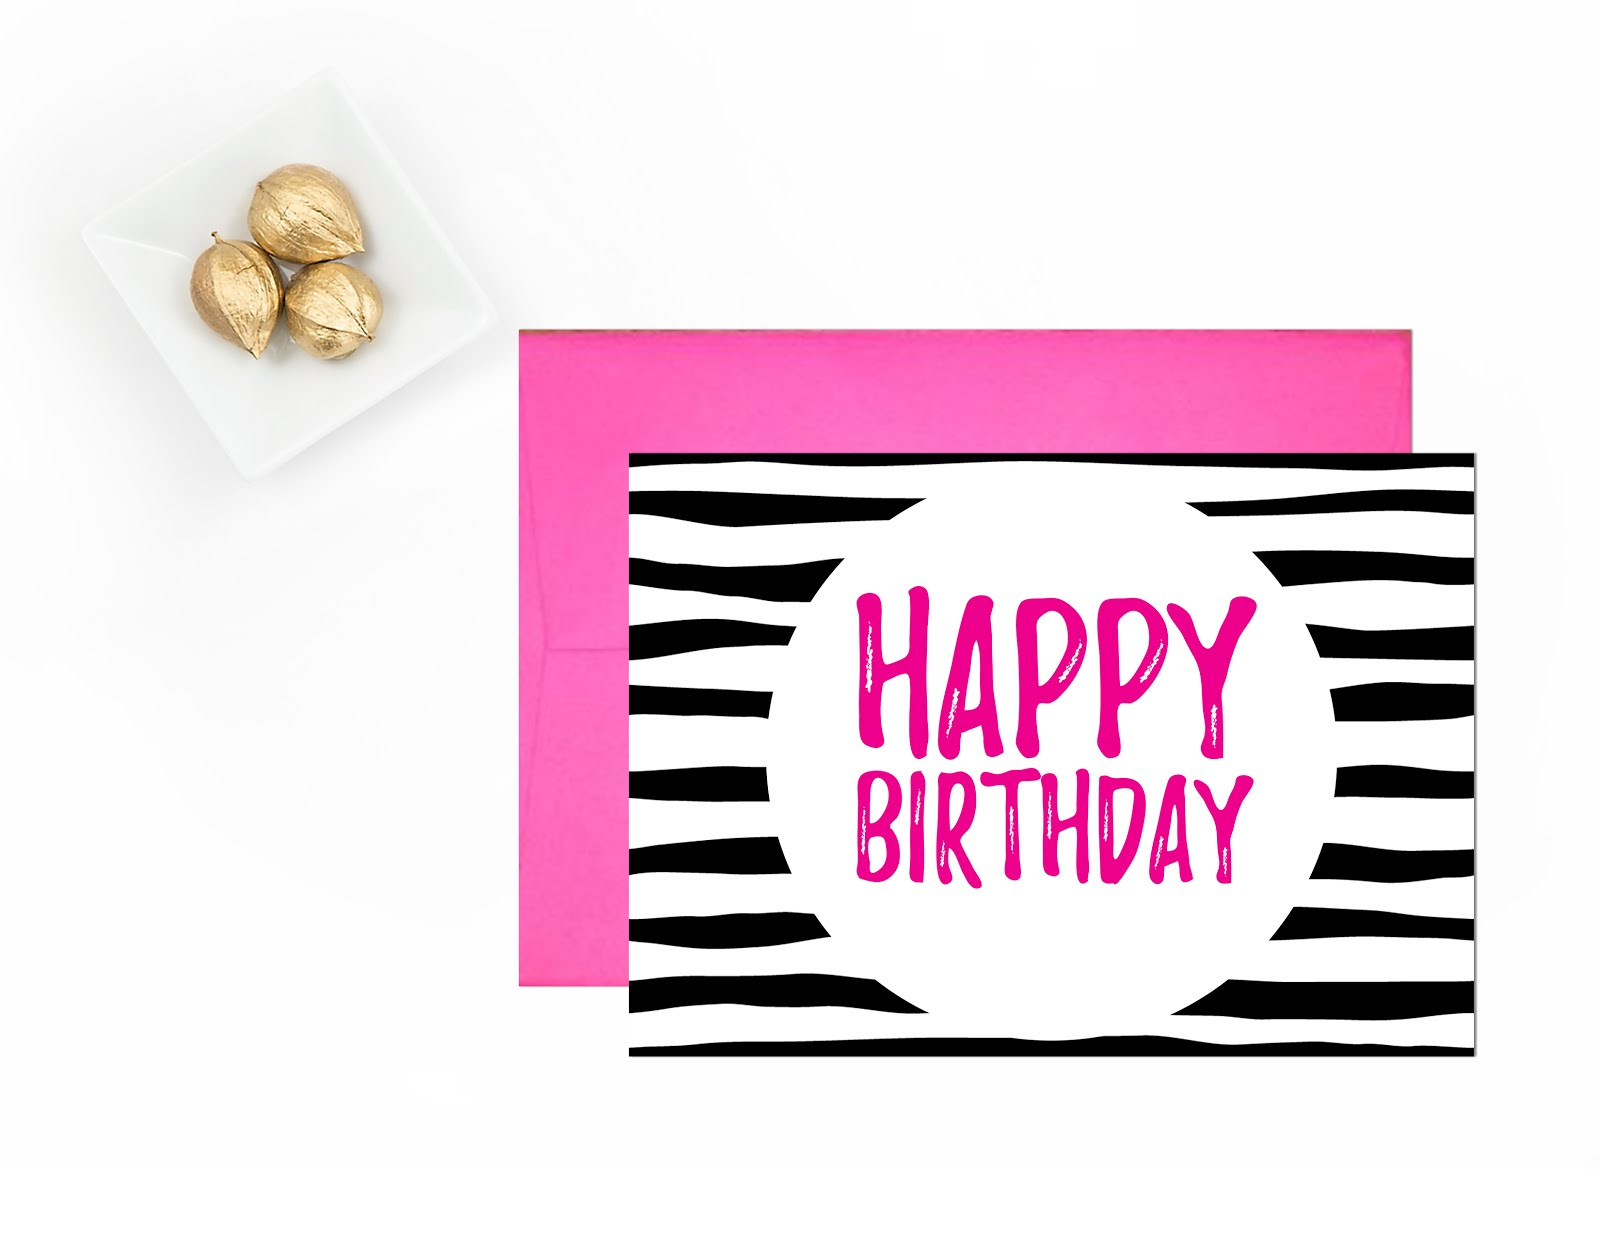 Happy Birthday | Free Printable Greeting Cards - Andree In Wonderland - Free Printable Bday Cards